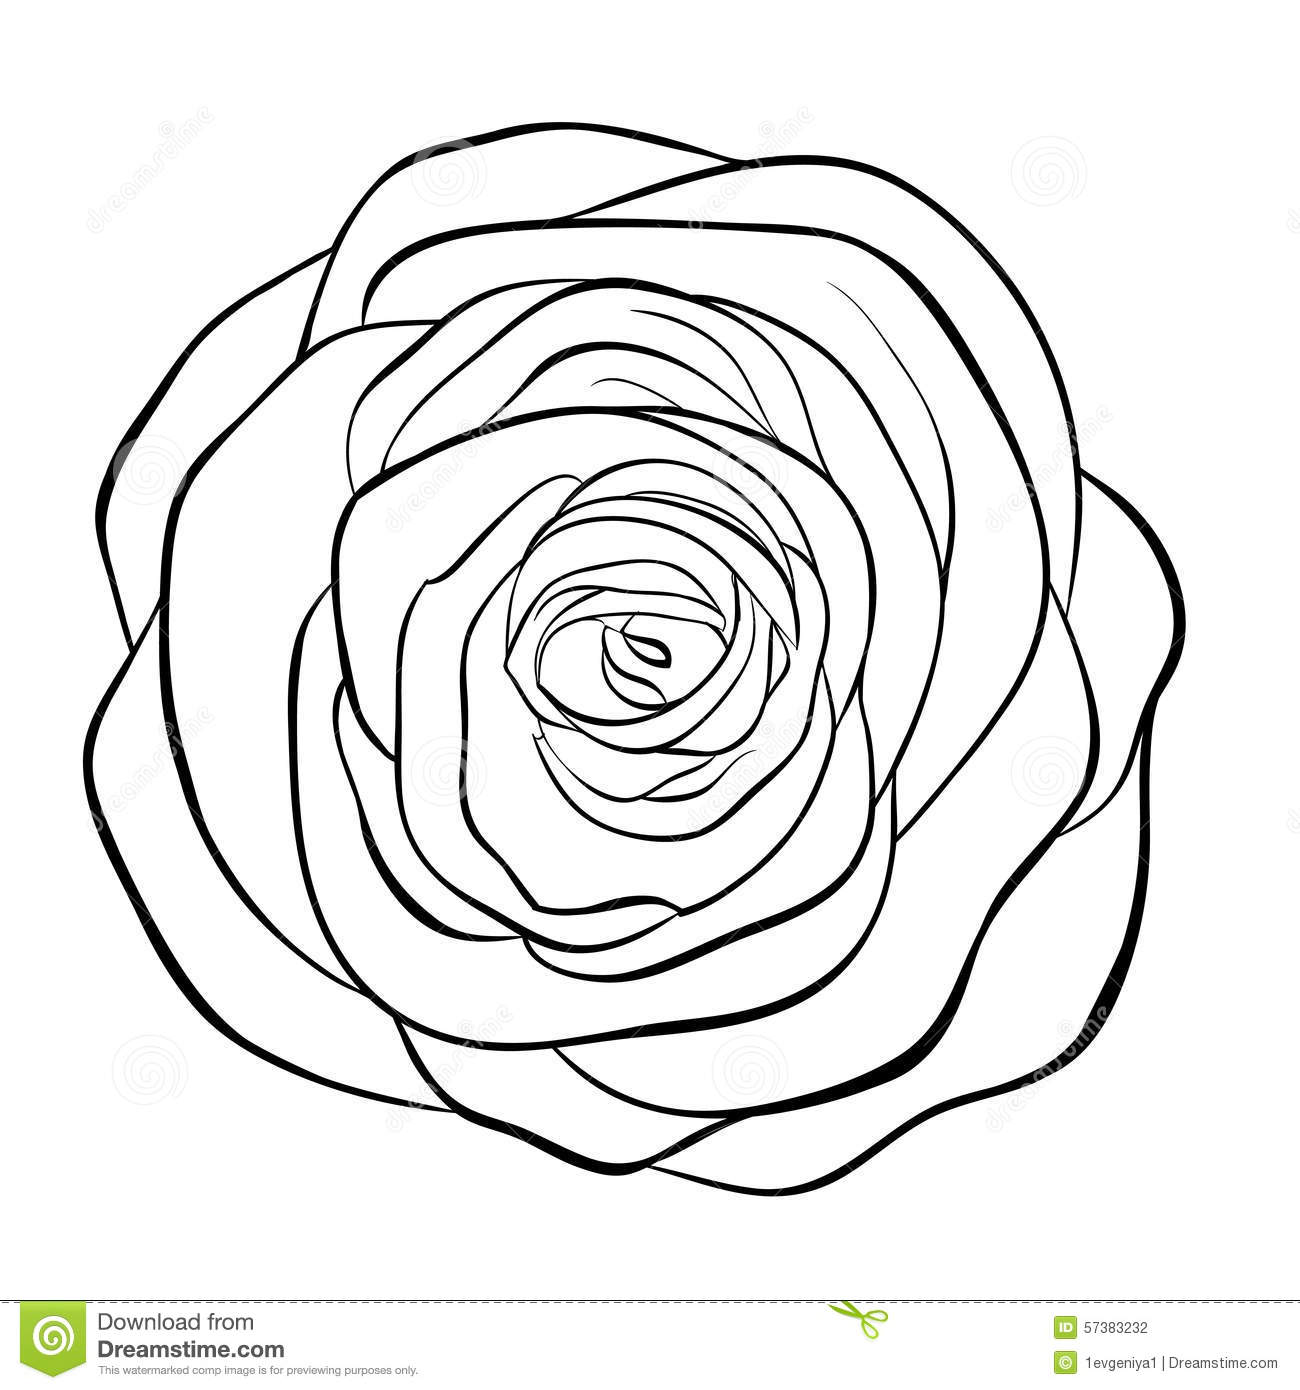 Line Art Rose : Beautiful monochrome black and white rose isolated on